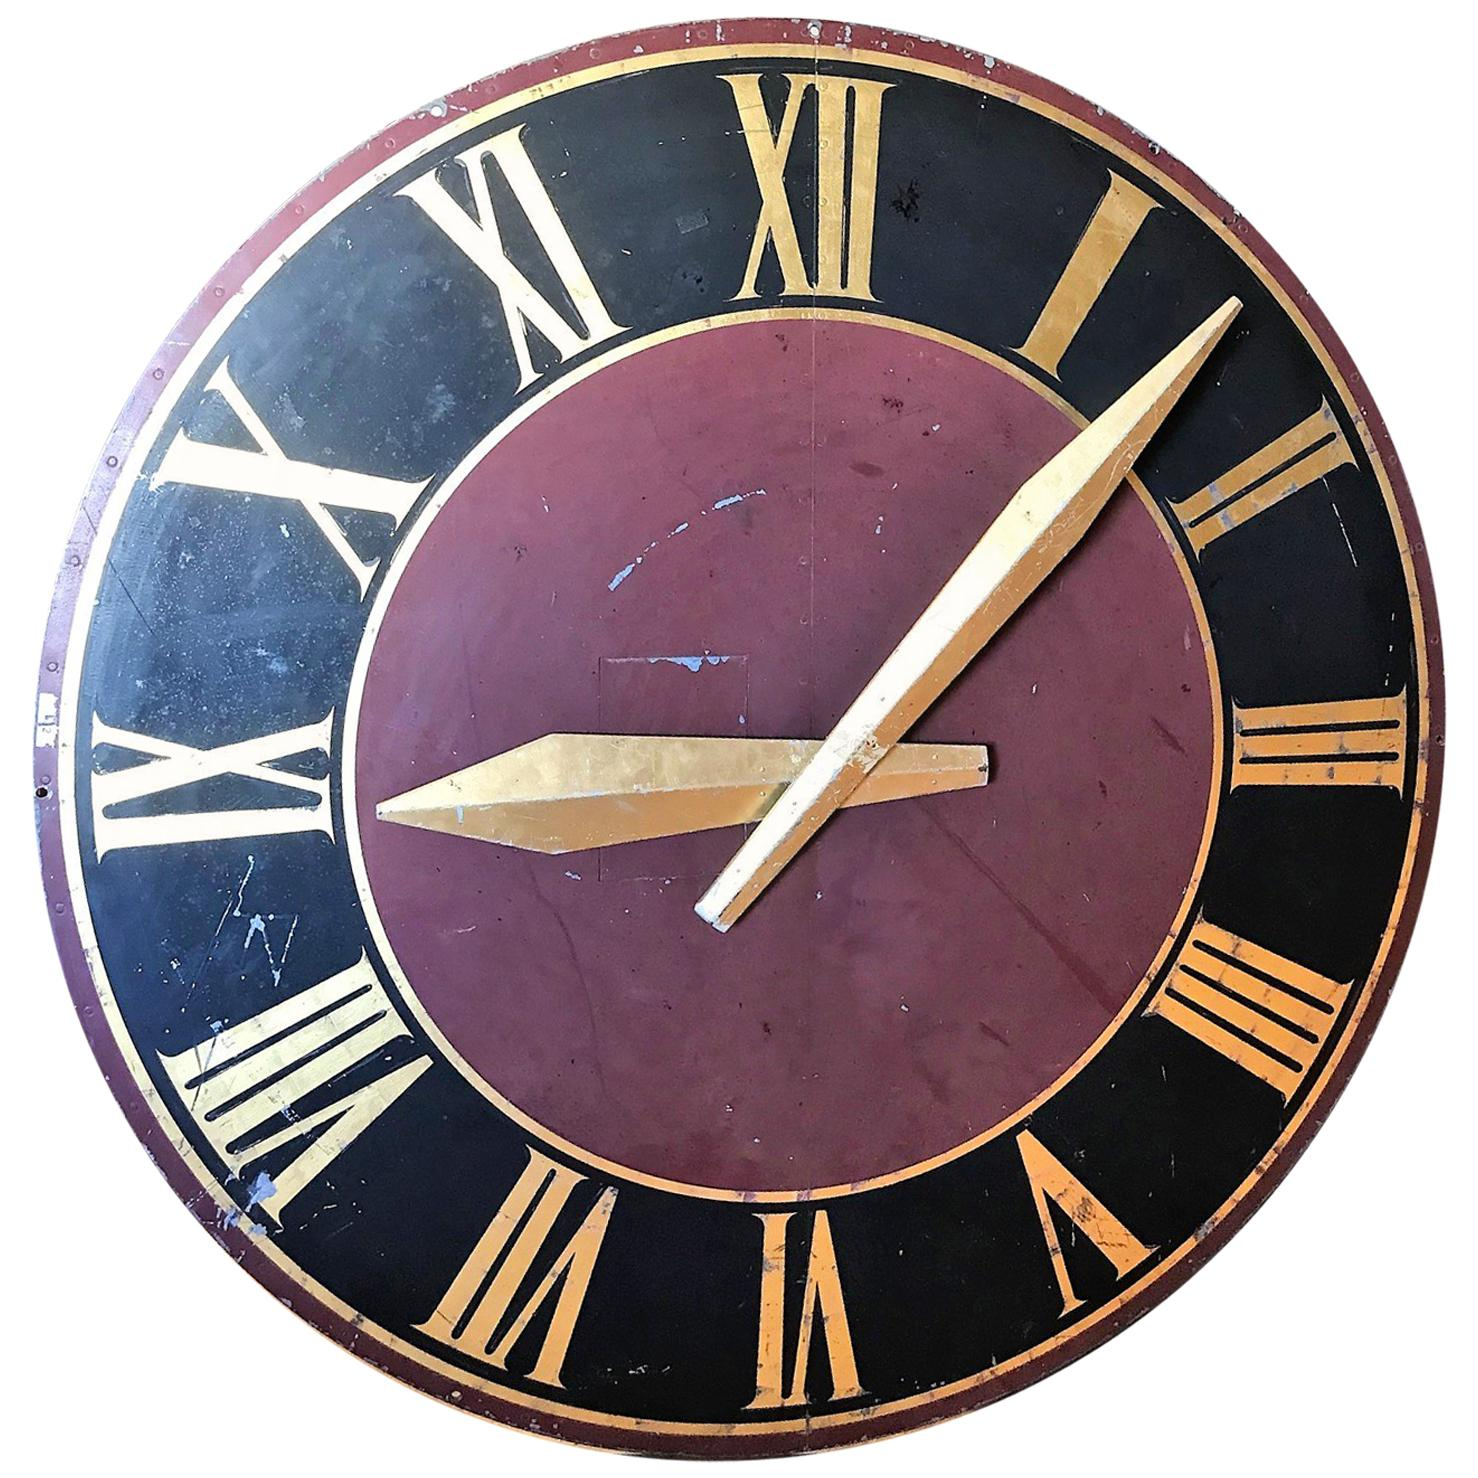 Large French Tower Clock Face, Painted Metal